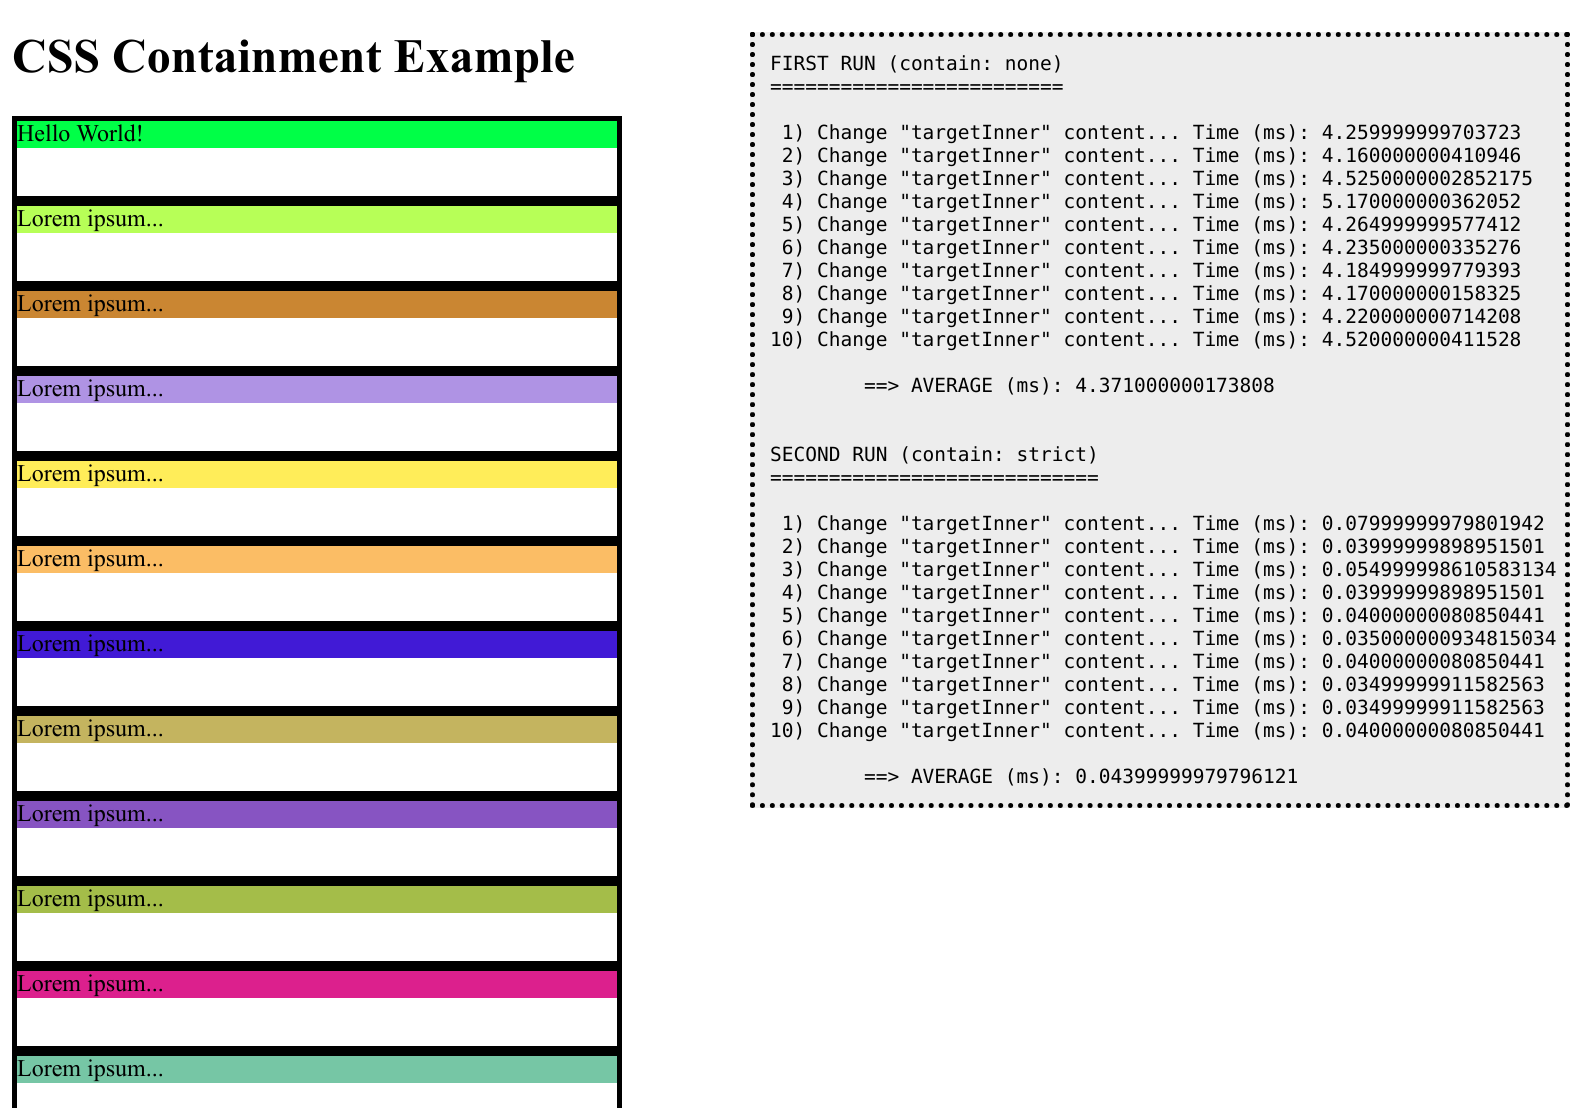 CSS Containment Example